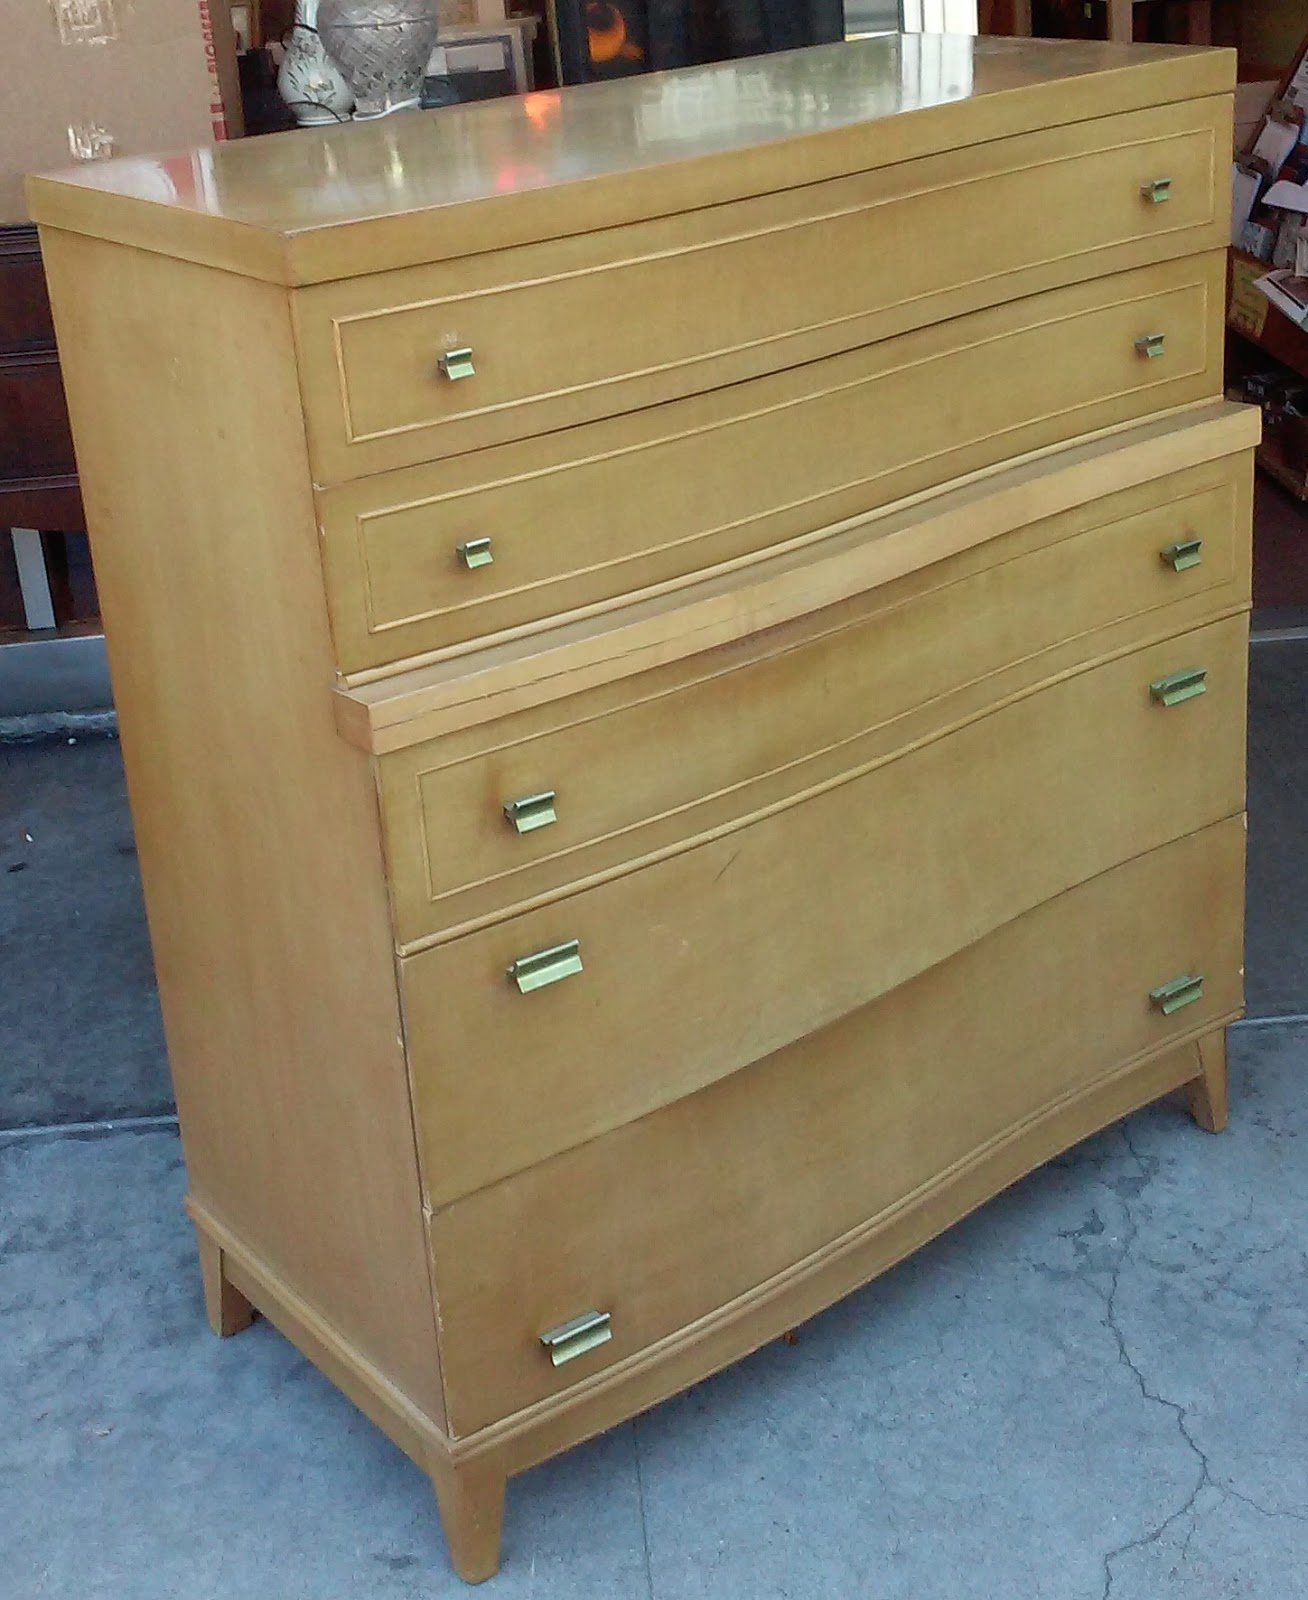 Uhuru furniture collectibles sold reduced blond for Reduced furniture